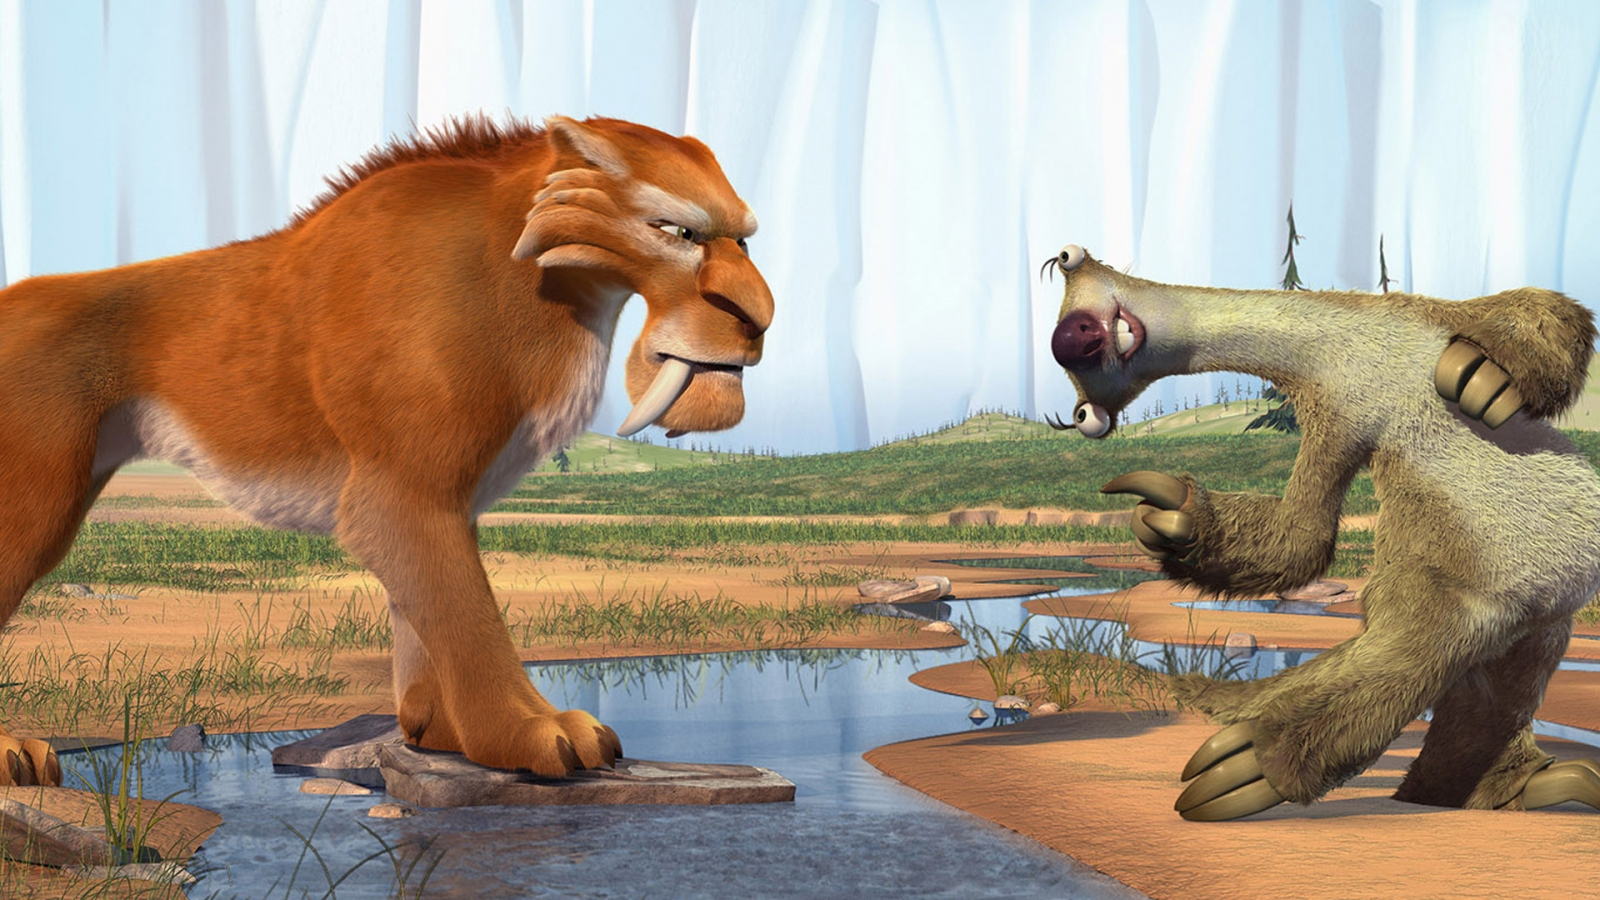 Ice Age Diego and Sid for 1600 x 900 HDTV resolution